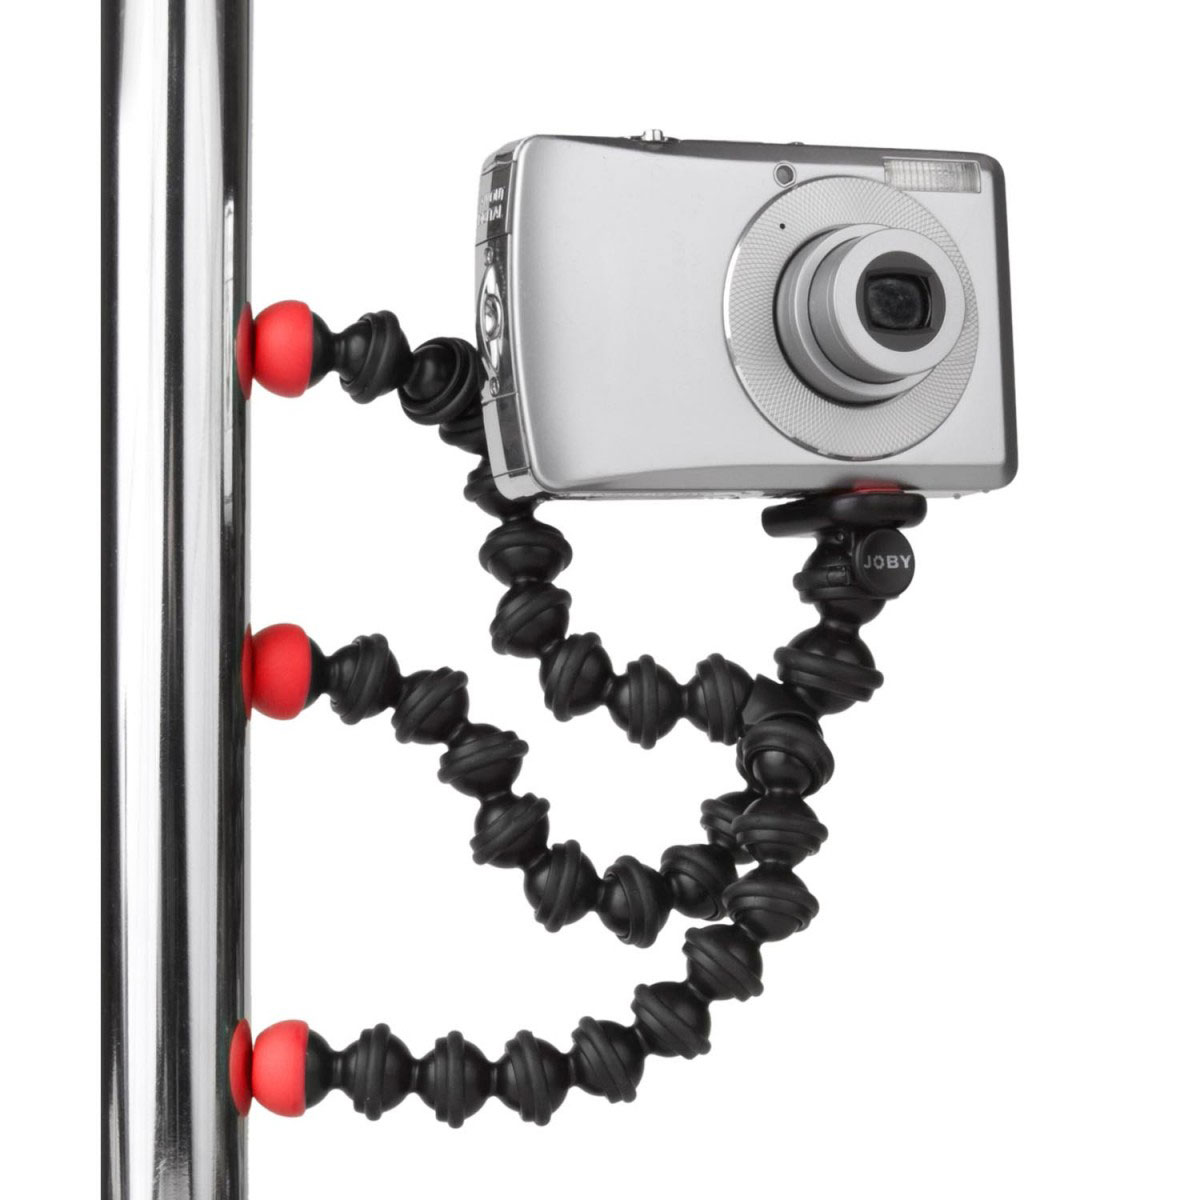 joby gorillapod magnetic noir rouge tr pied appareil photo joby sur. Black Bedroom Furniture Sets. Home Design Ideas